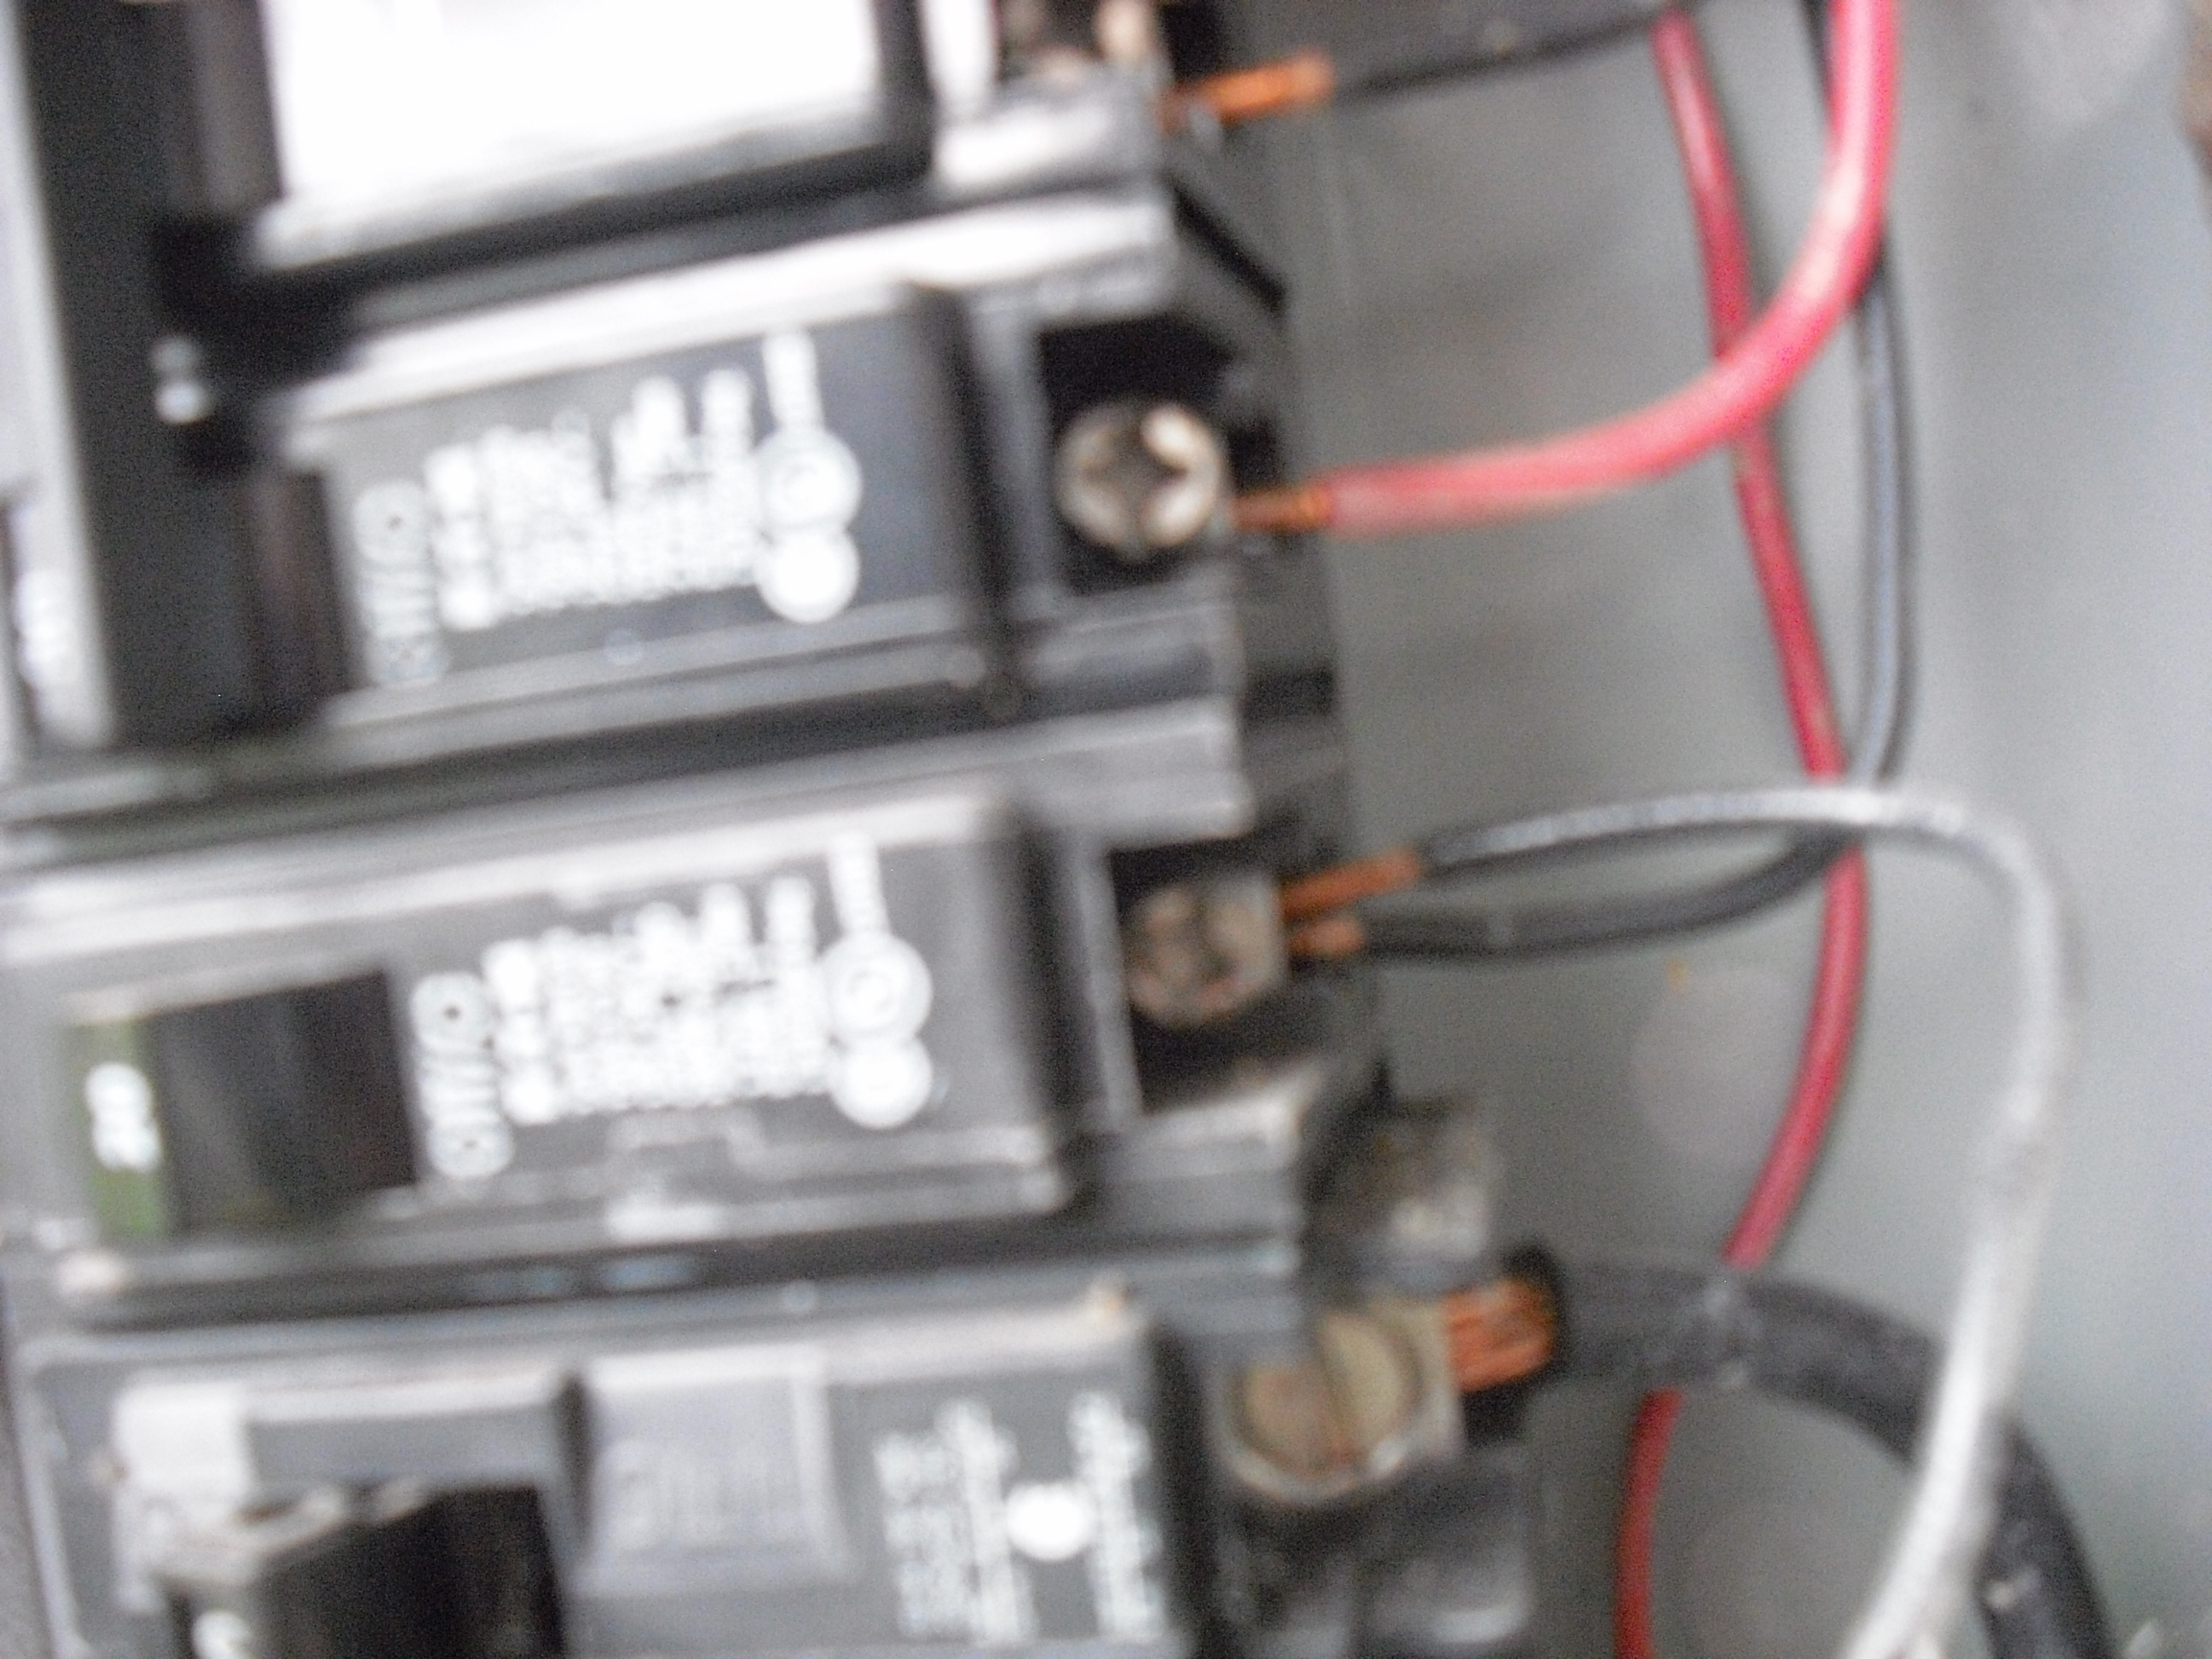 For Pigtailing Aluminum Wiring Internachi Inspection Forum - Wiring ...